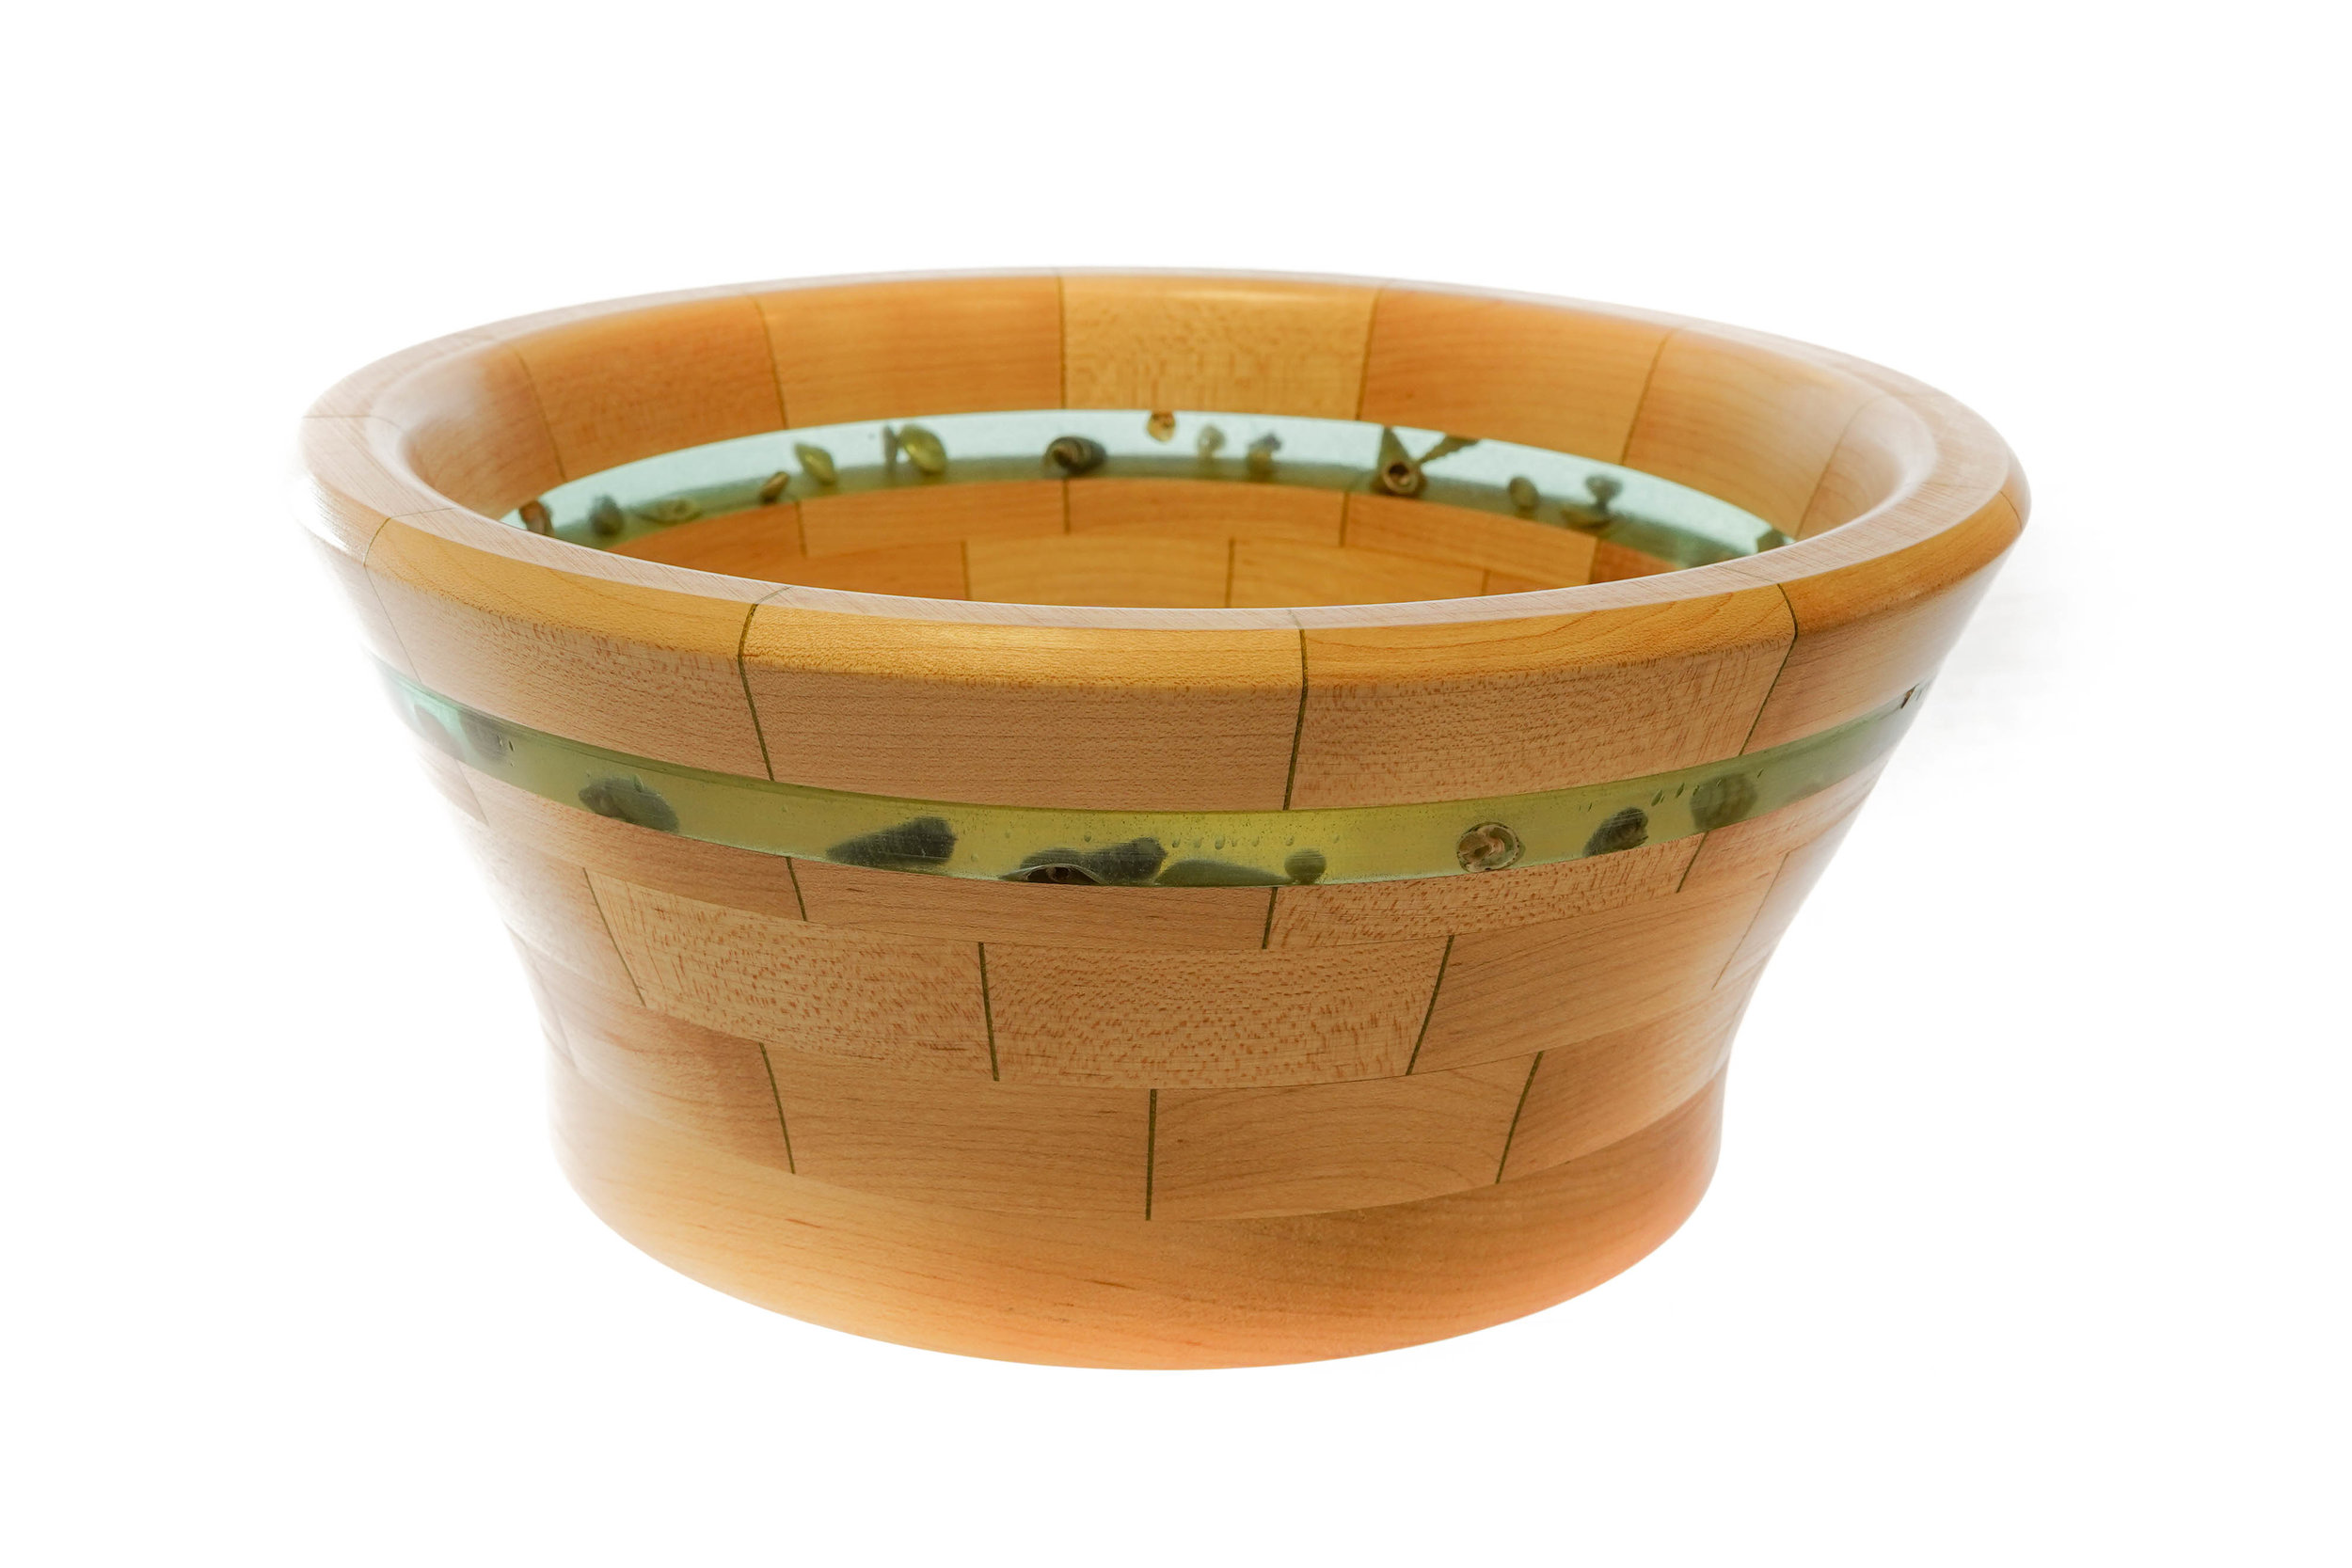 RJC Wood Creations - Resin Bowl Green (3).jpg